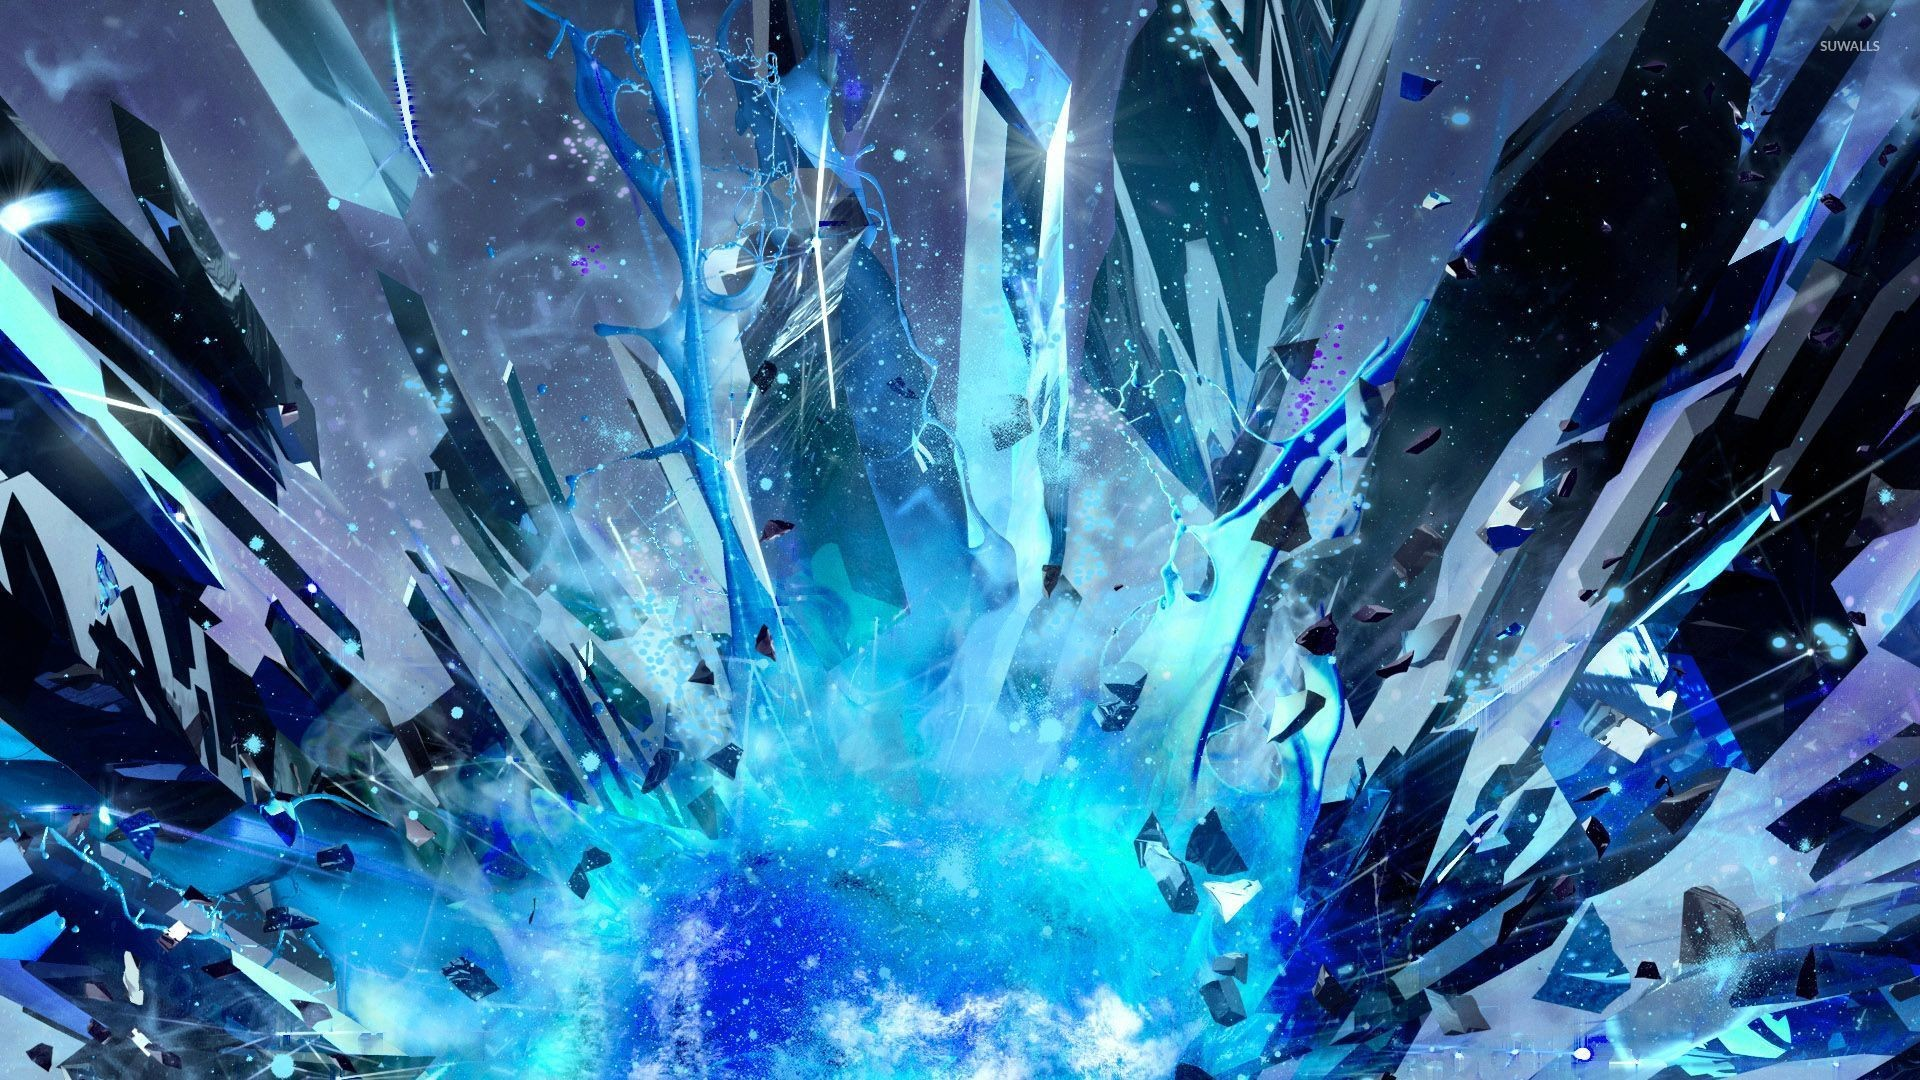 Res: 1920x1080, Blue crystal explosion wallpaper